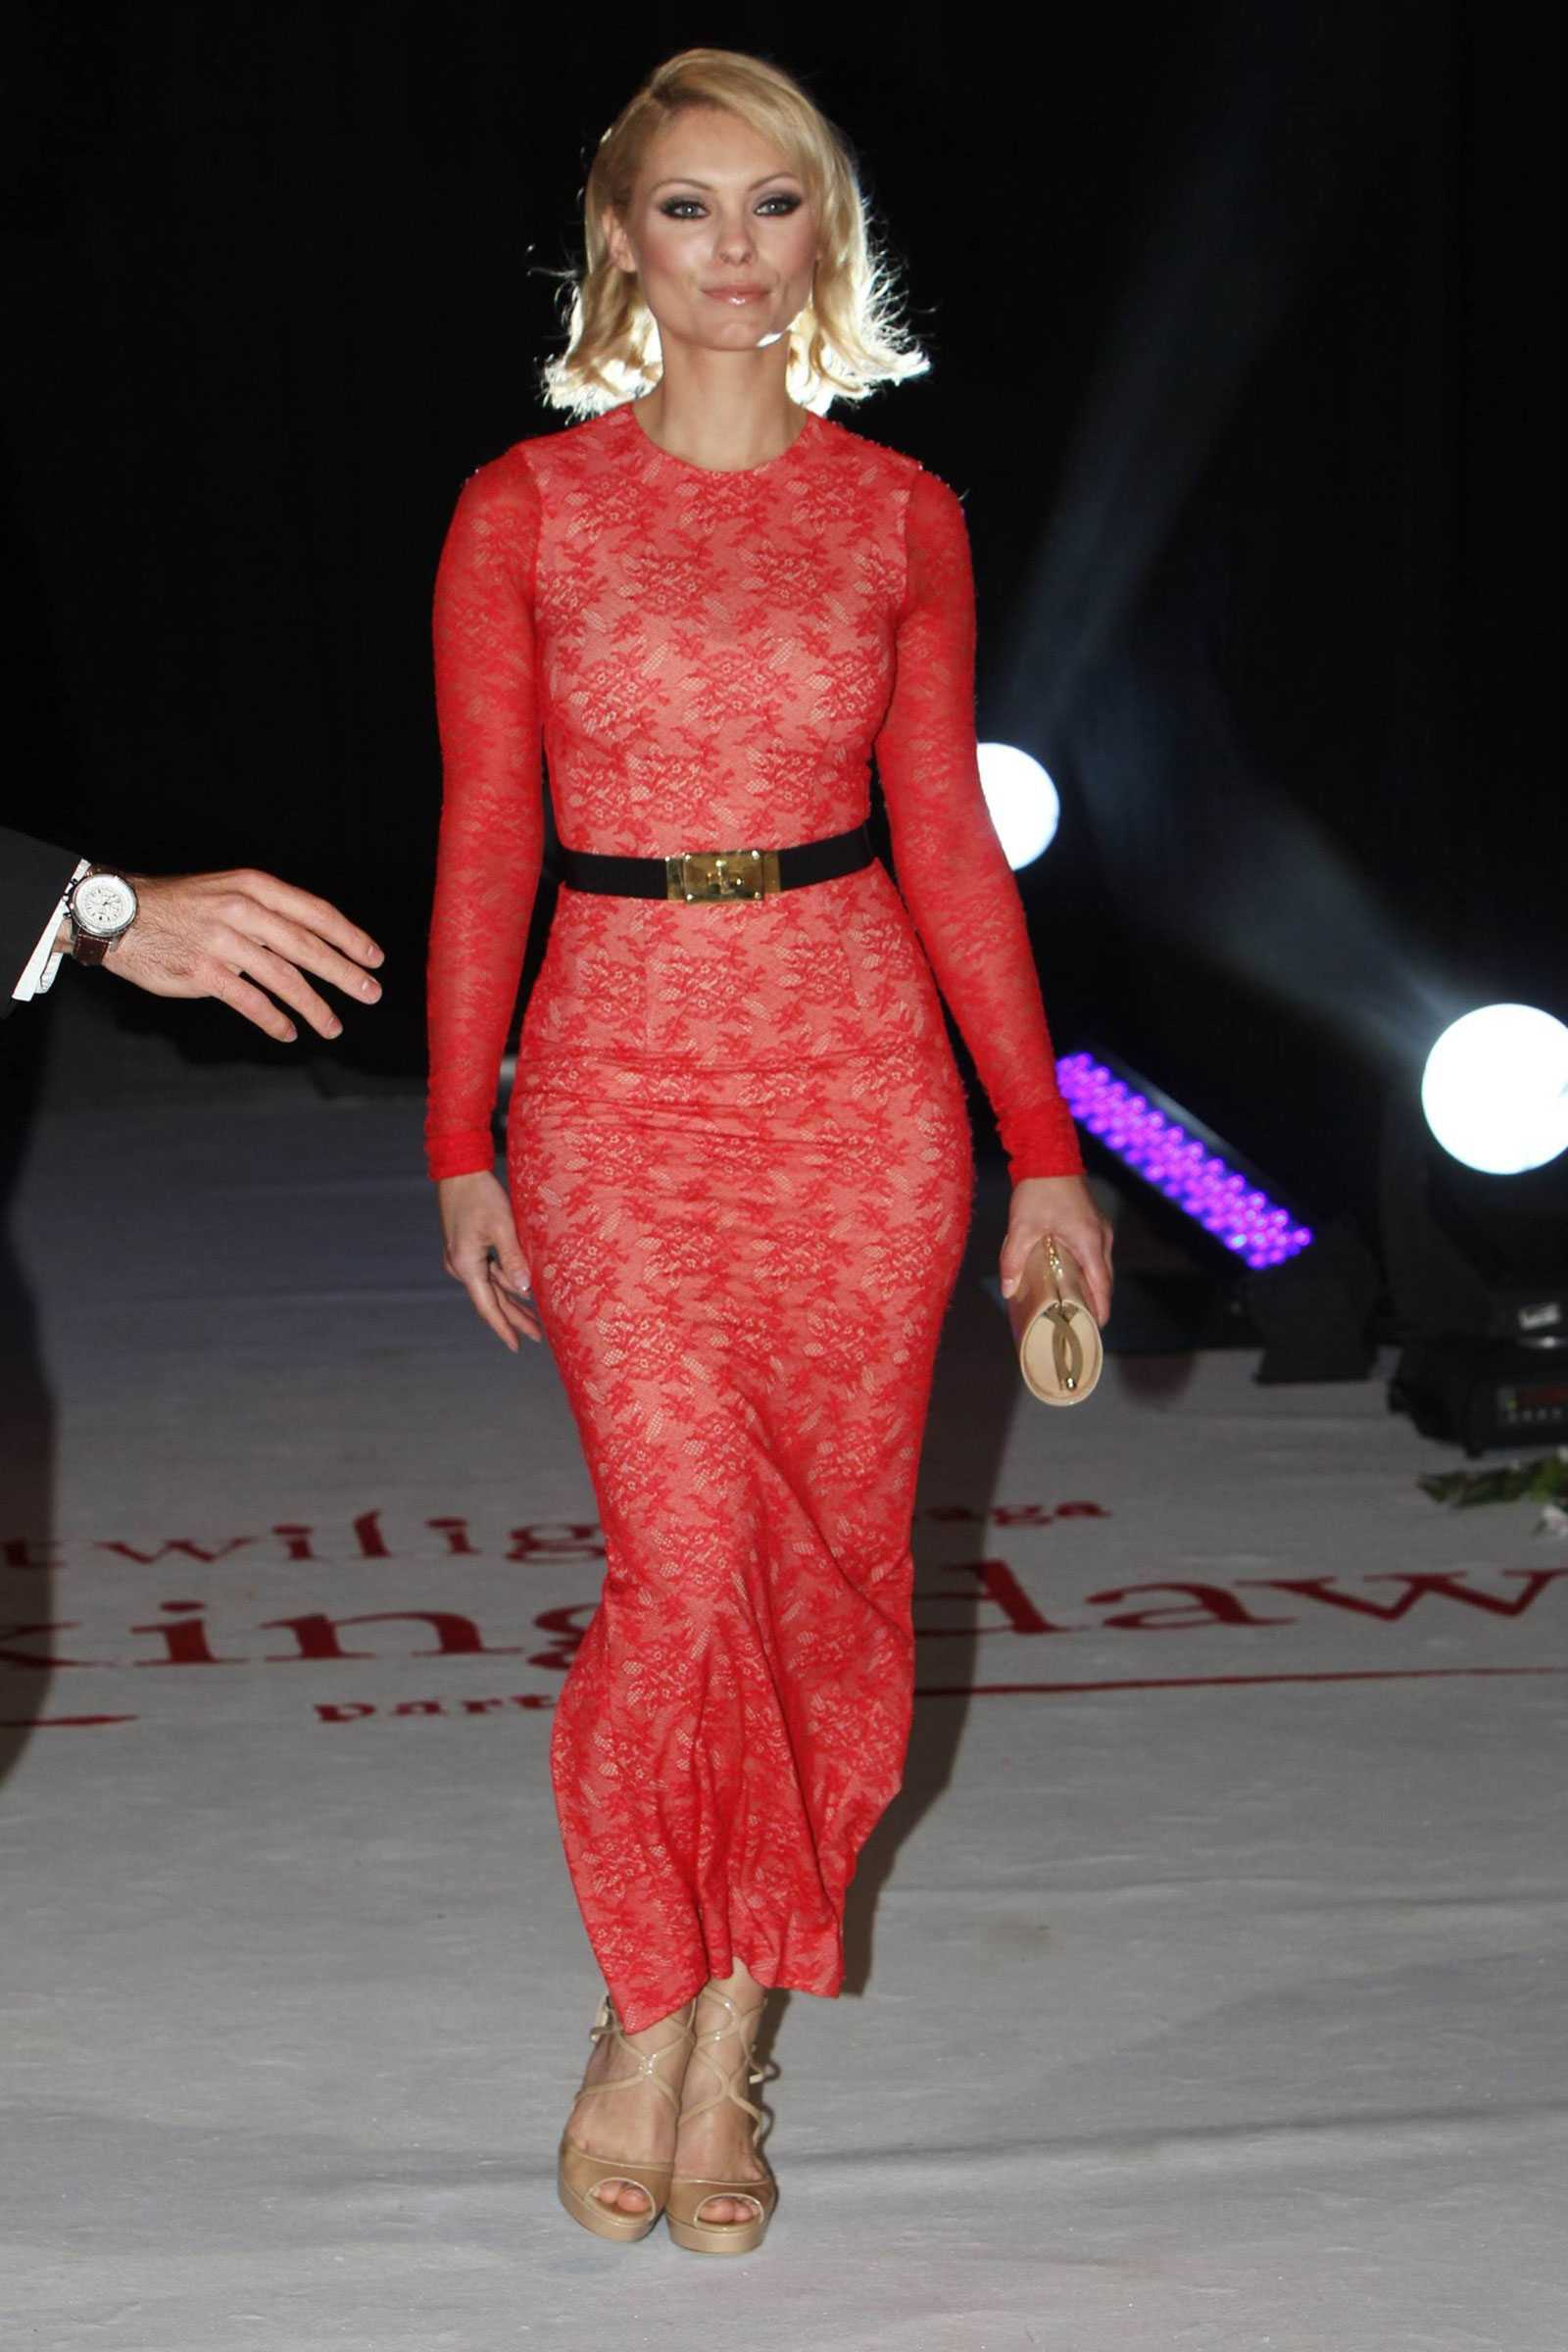 MyAnna Buring sexy red dress pic